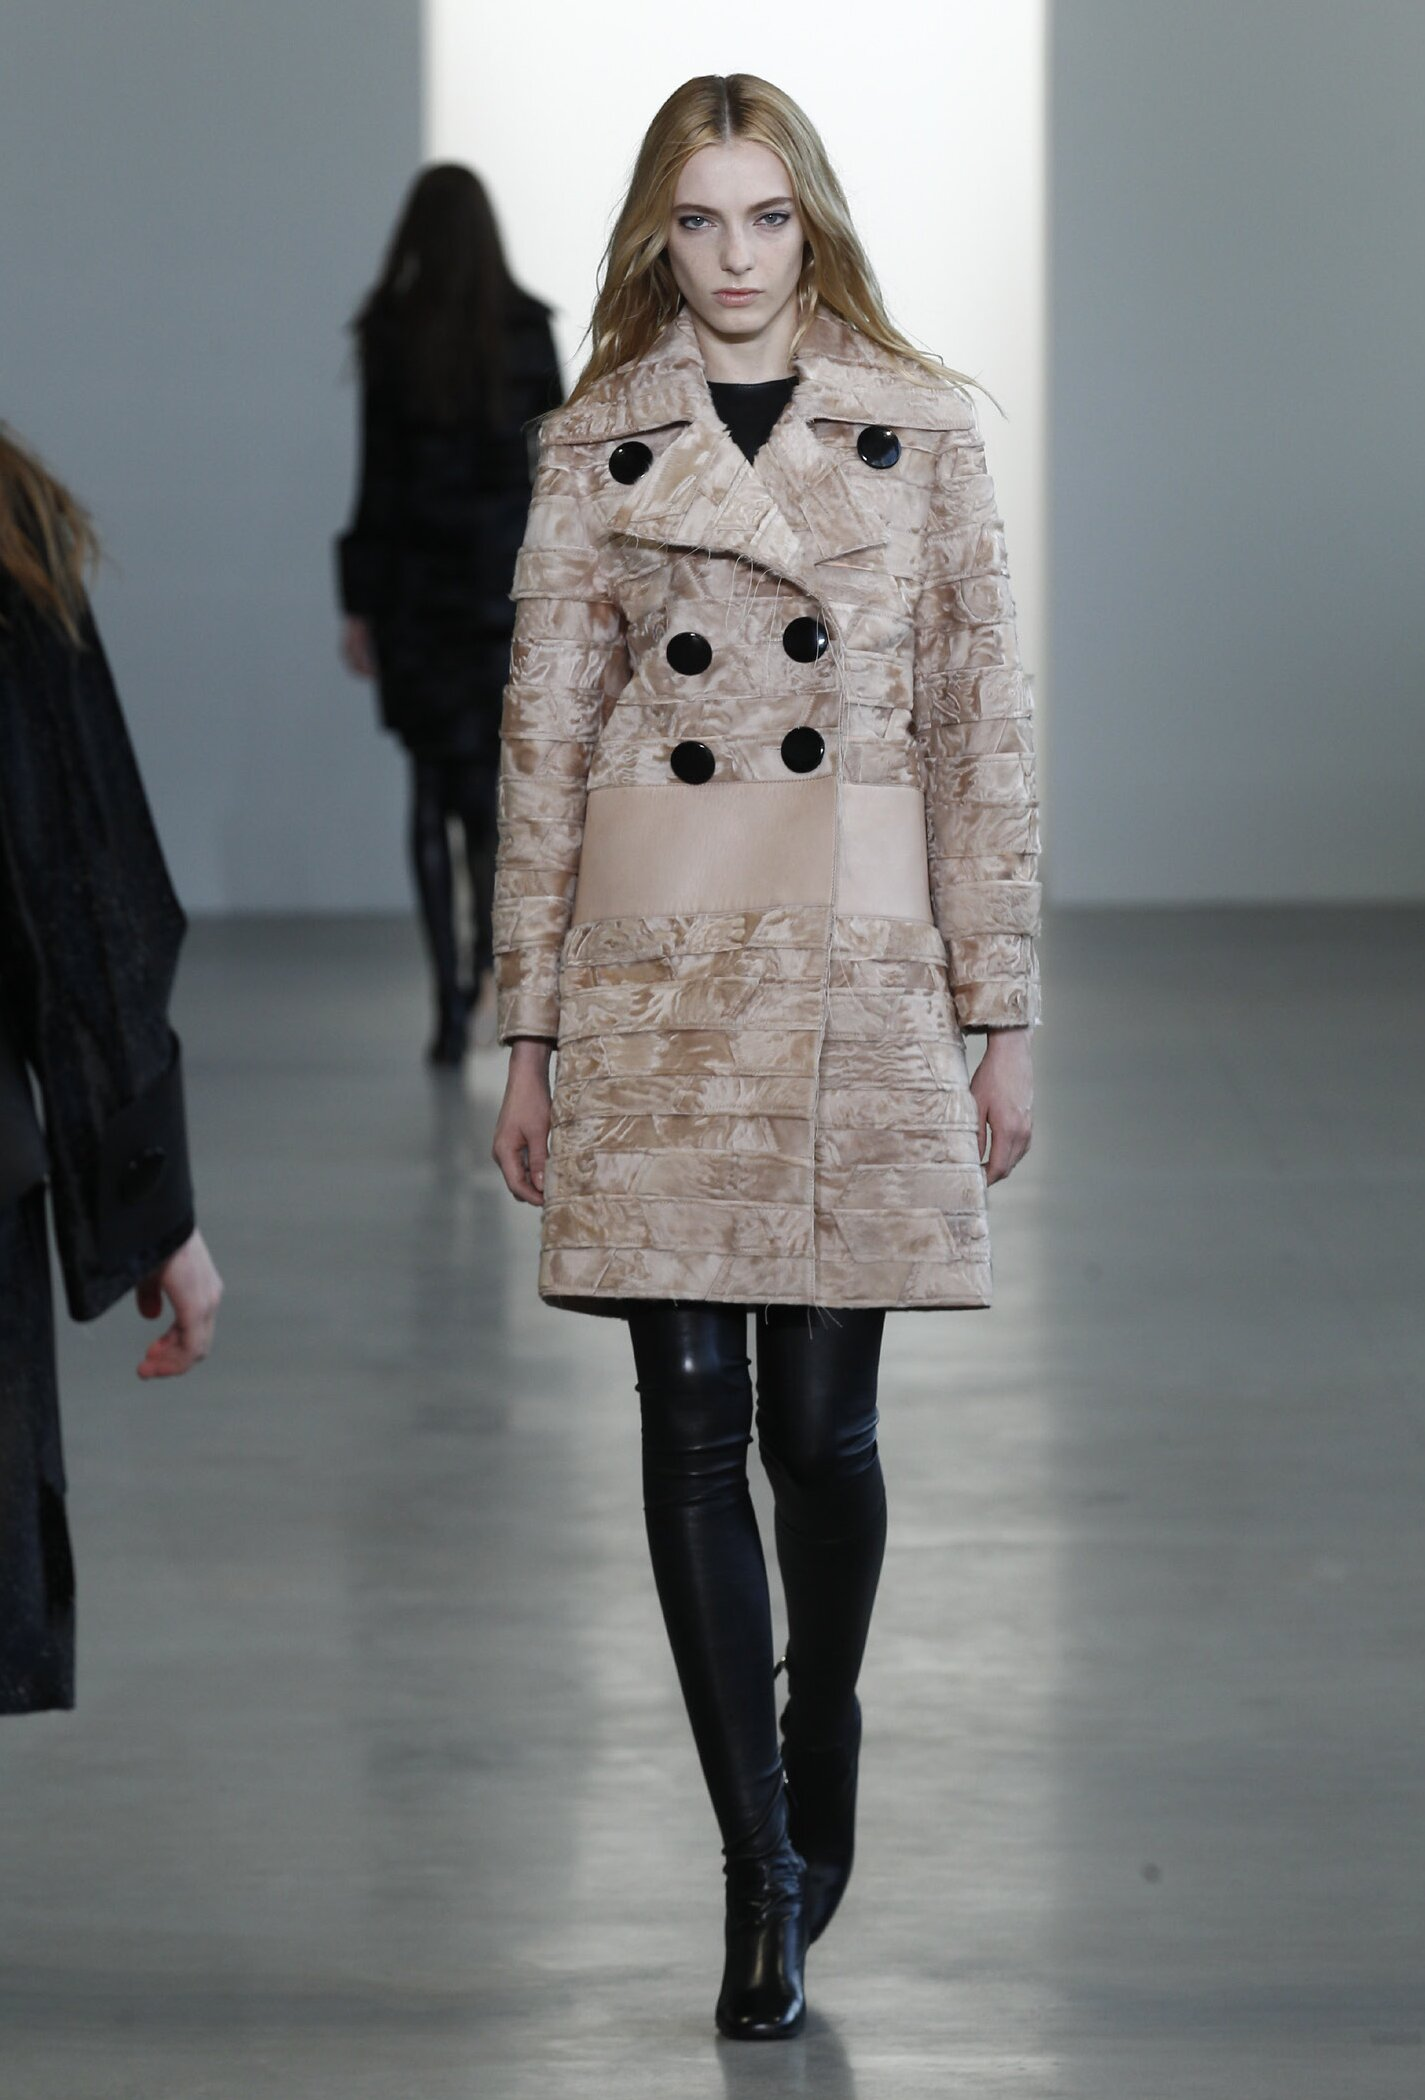 CALVIN KLEIN COLLECTION WOMEN'S FALL 2015 | The Skinny Beep